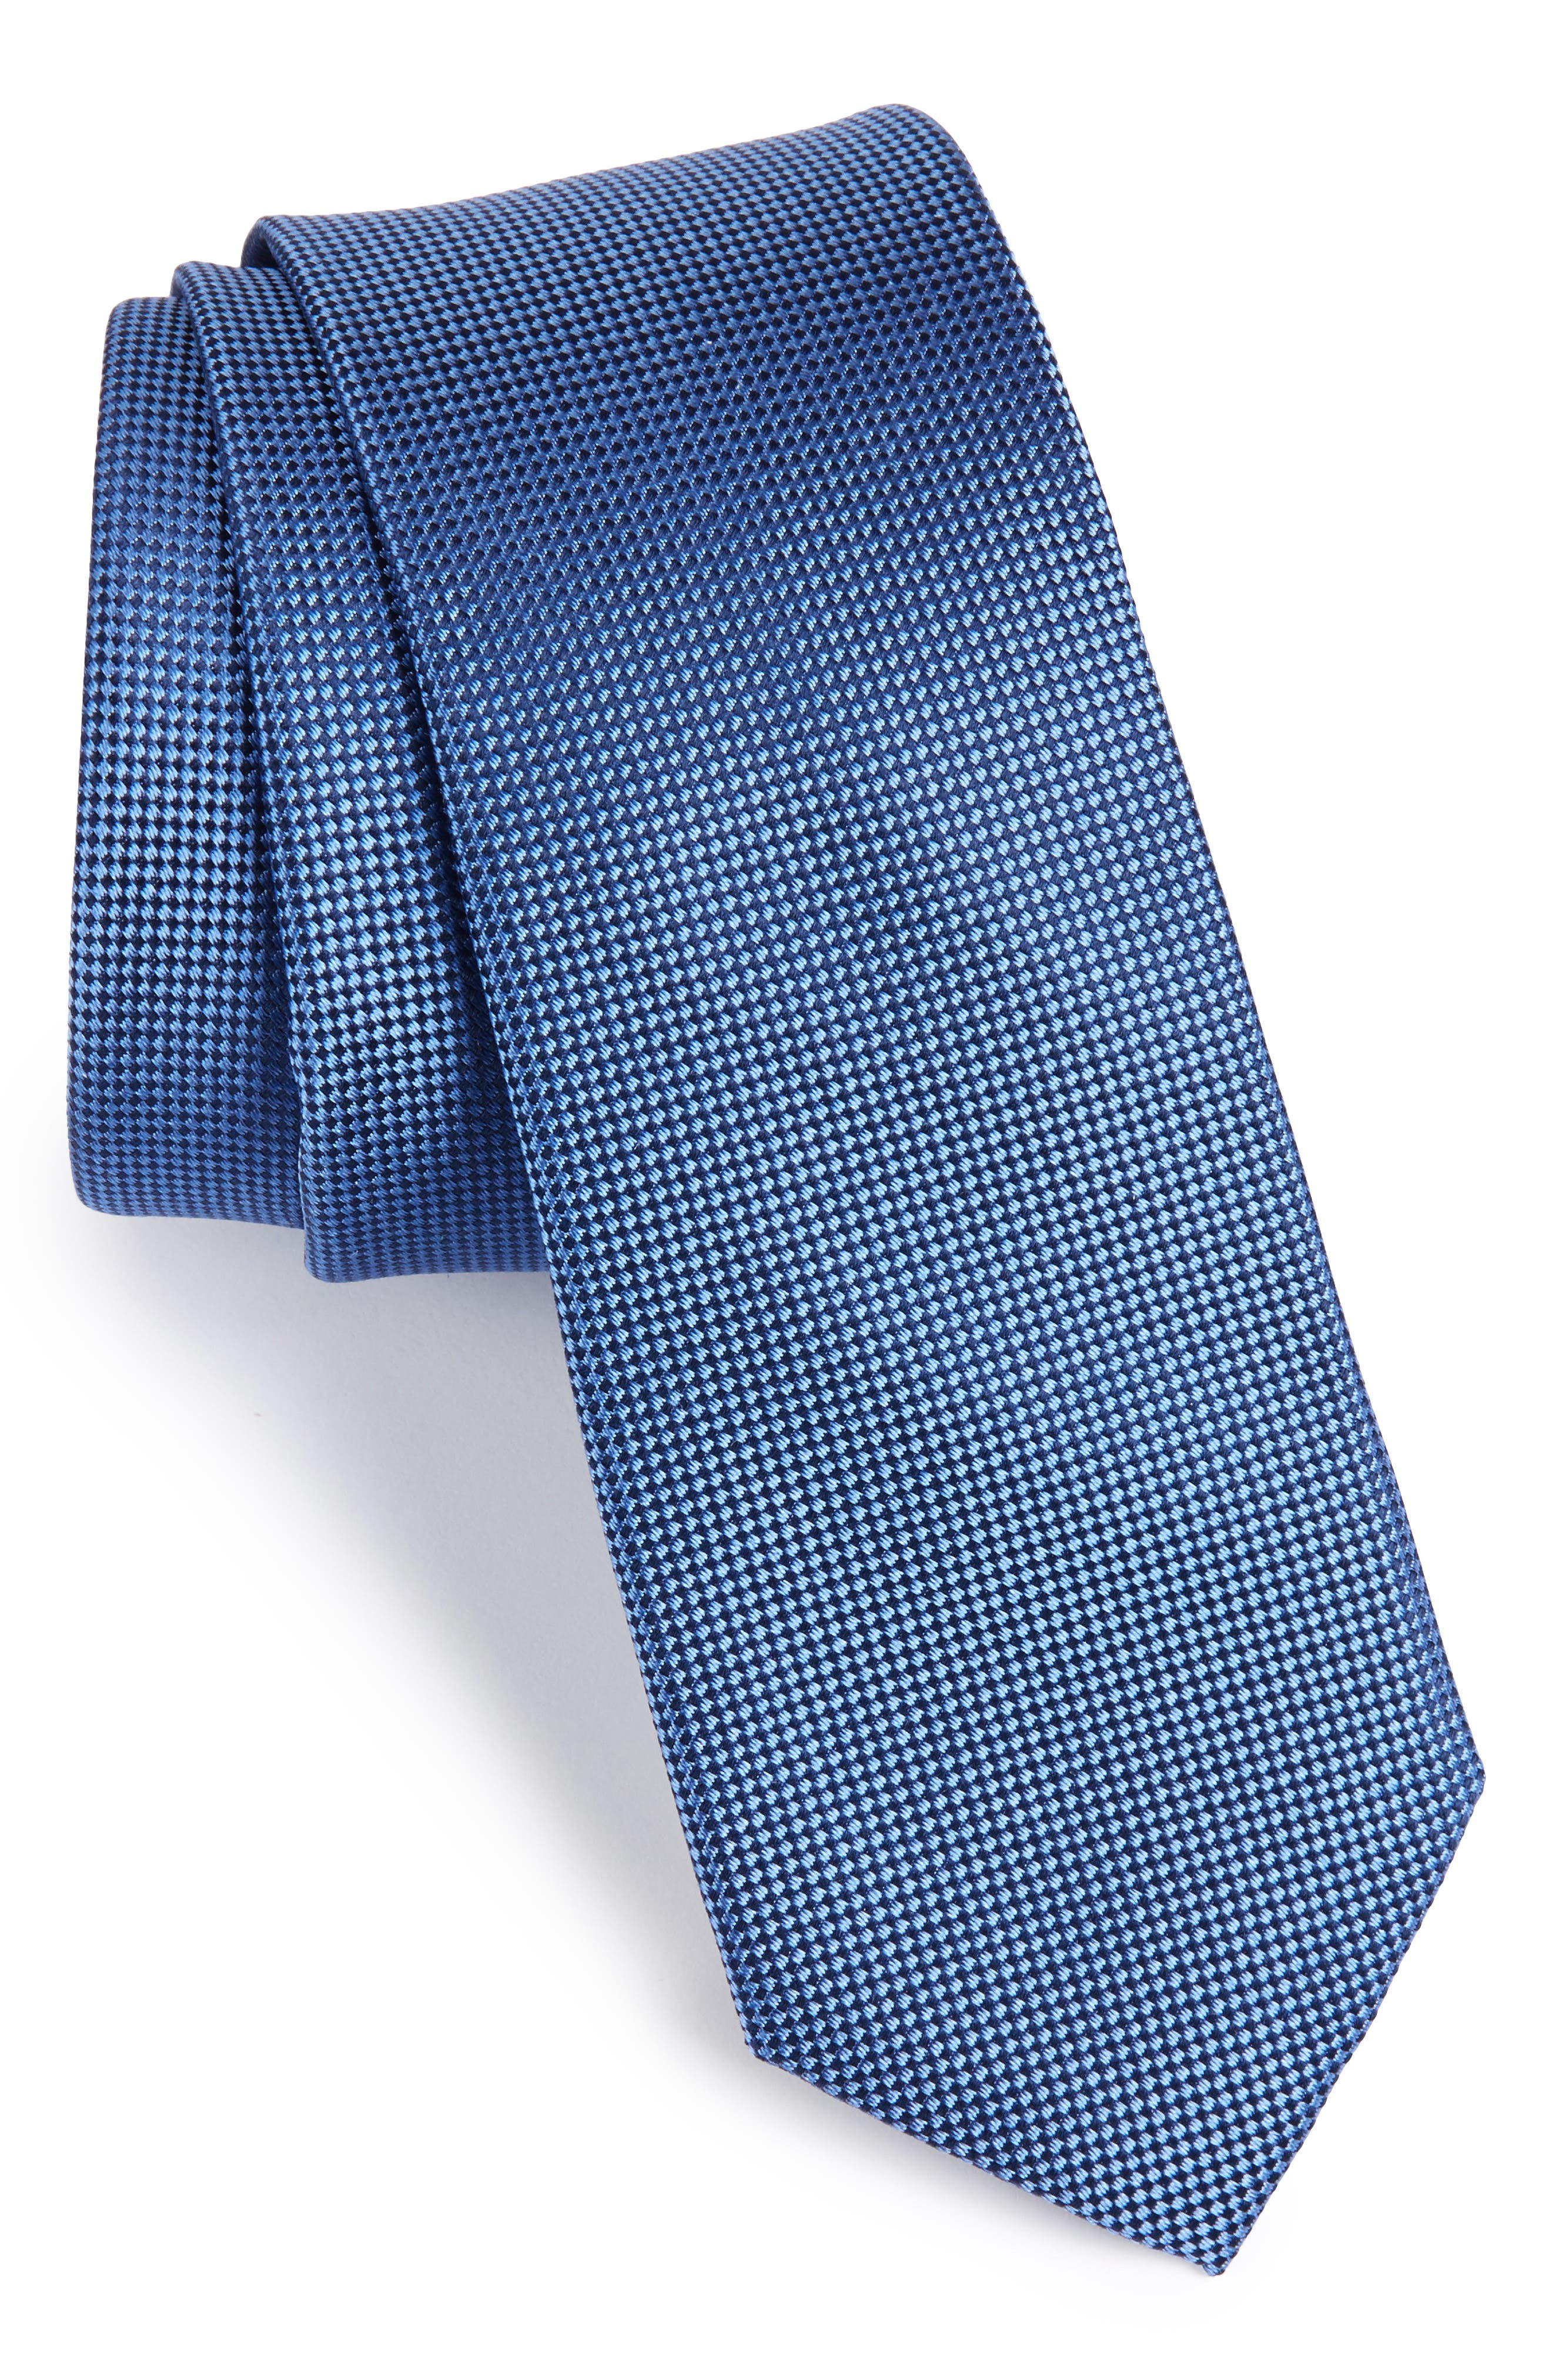 Nordstrom Men's Shop Oxford Solid Silk Skinny Tie